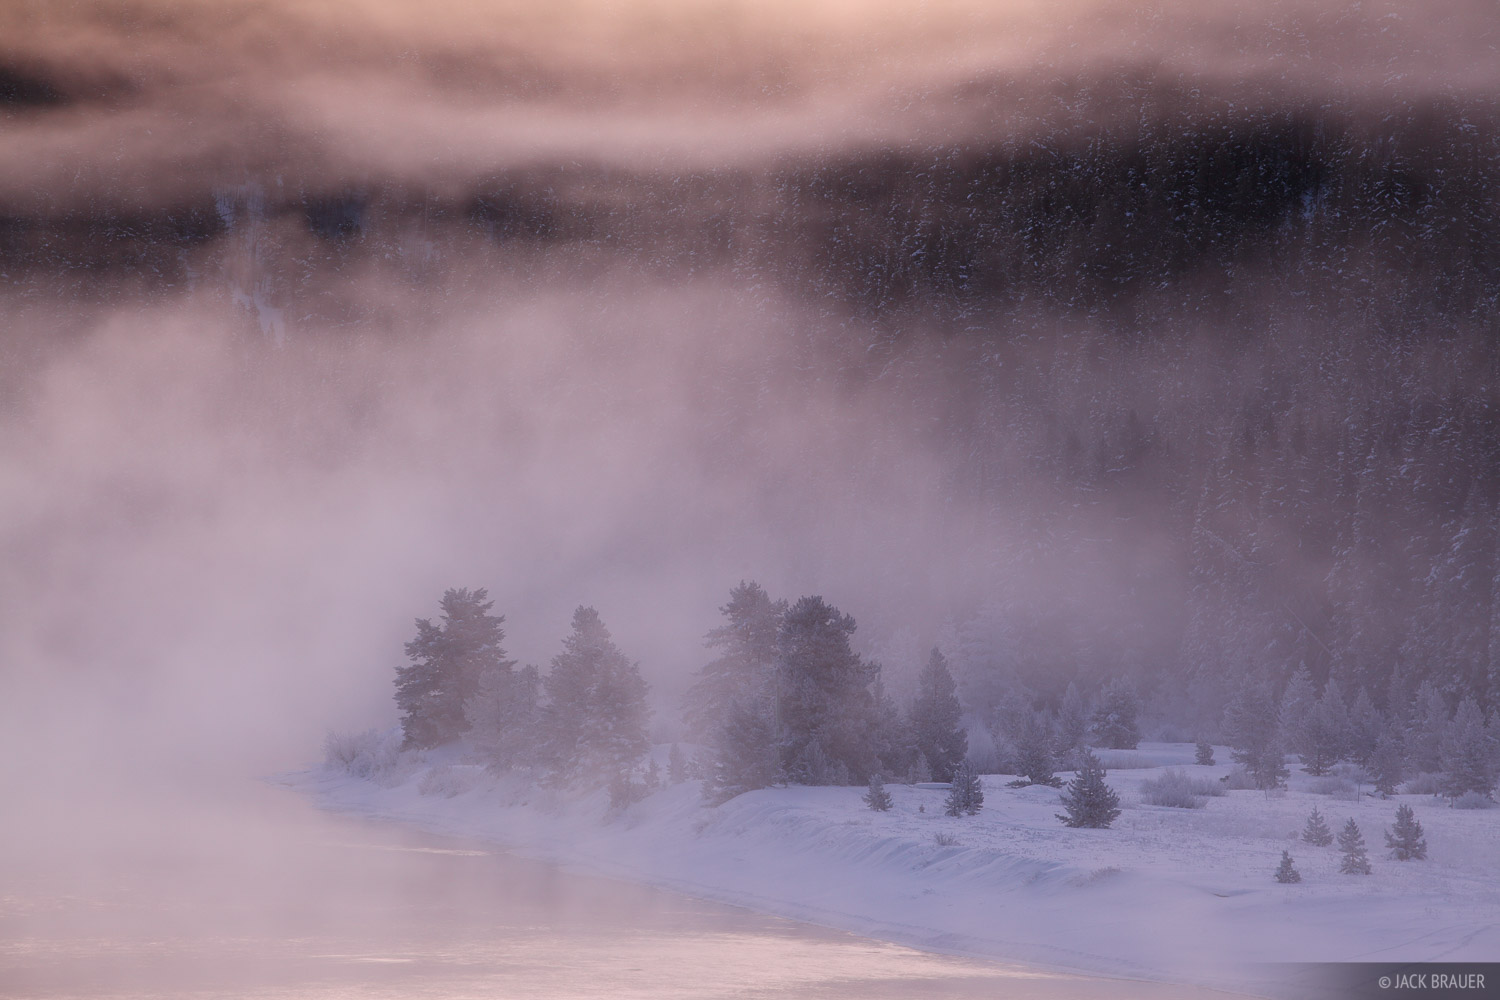 Snake River, Jackson Hole, Wyoming, mist, winter, photo